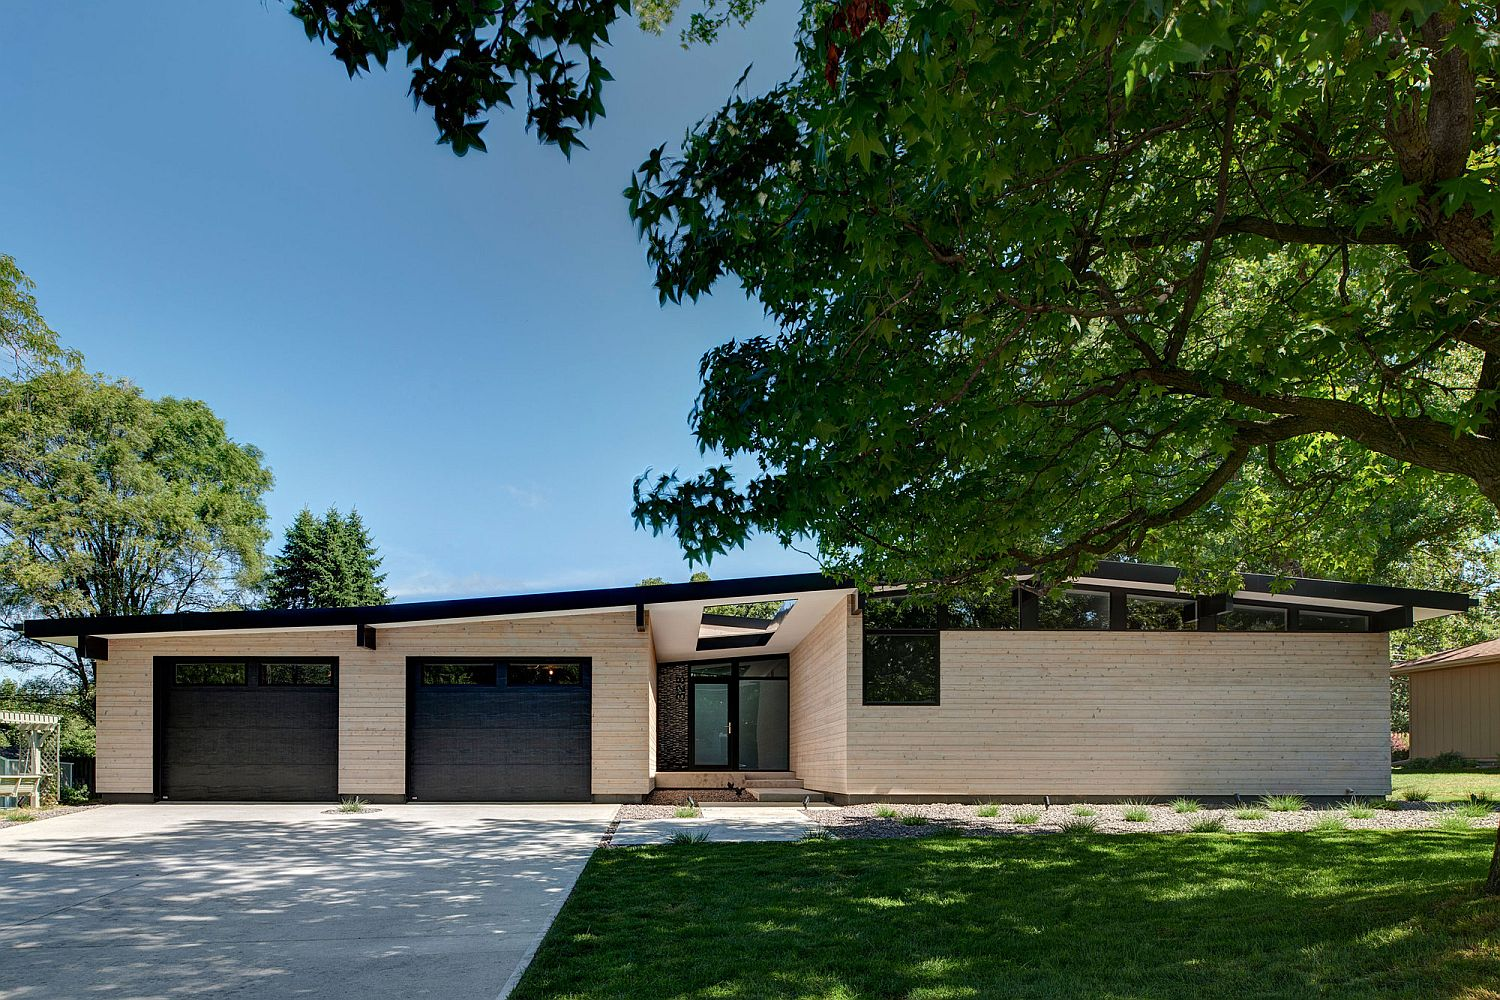 Revamped and re-imagined Iowa City home with energy-efficient design